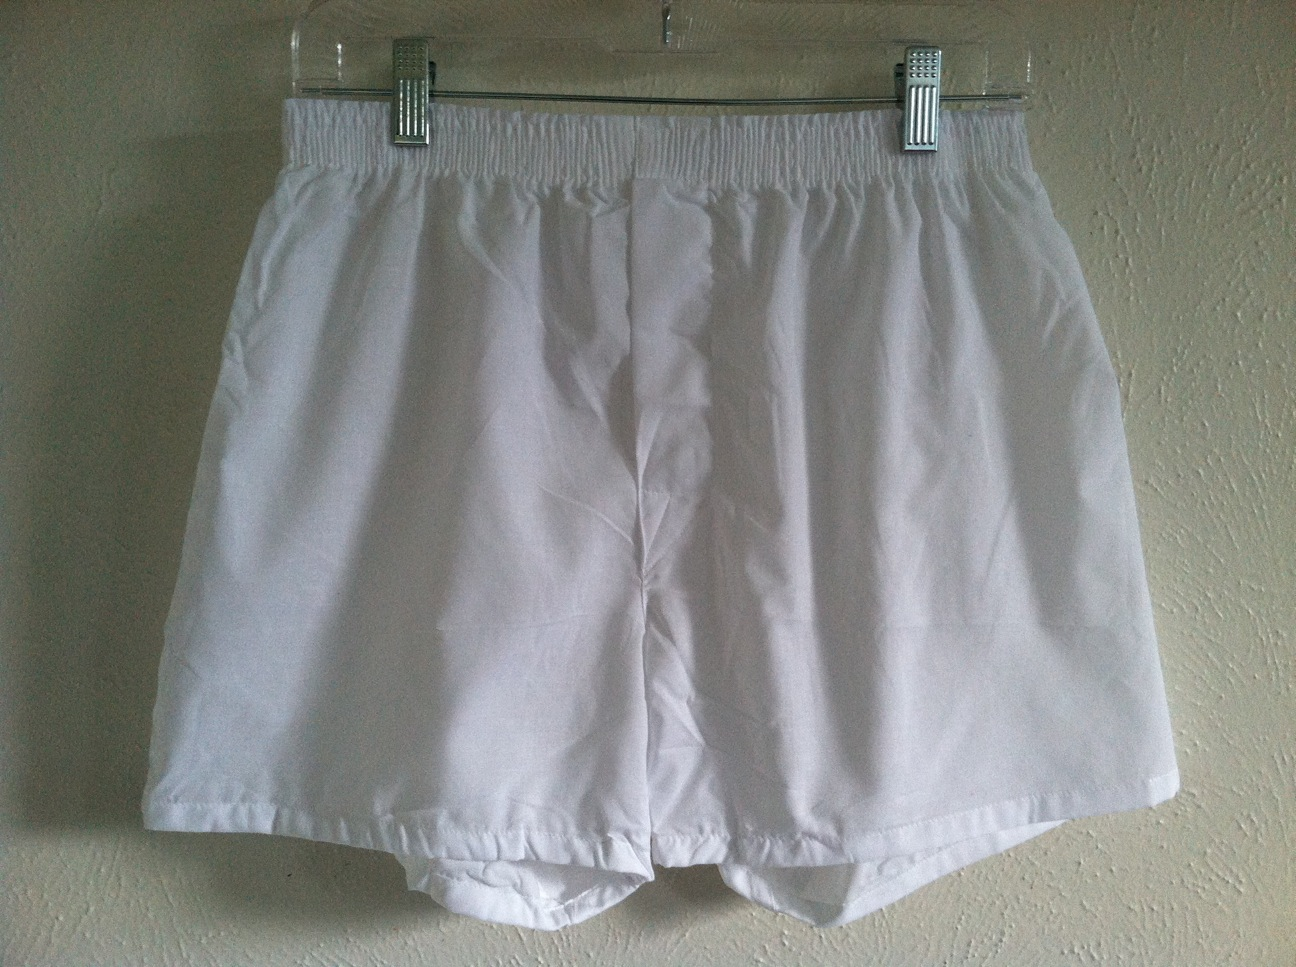 Cute Shorts Made From Men's Boxers – Zounds Designs